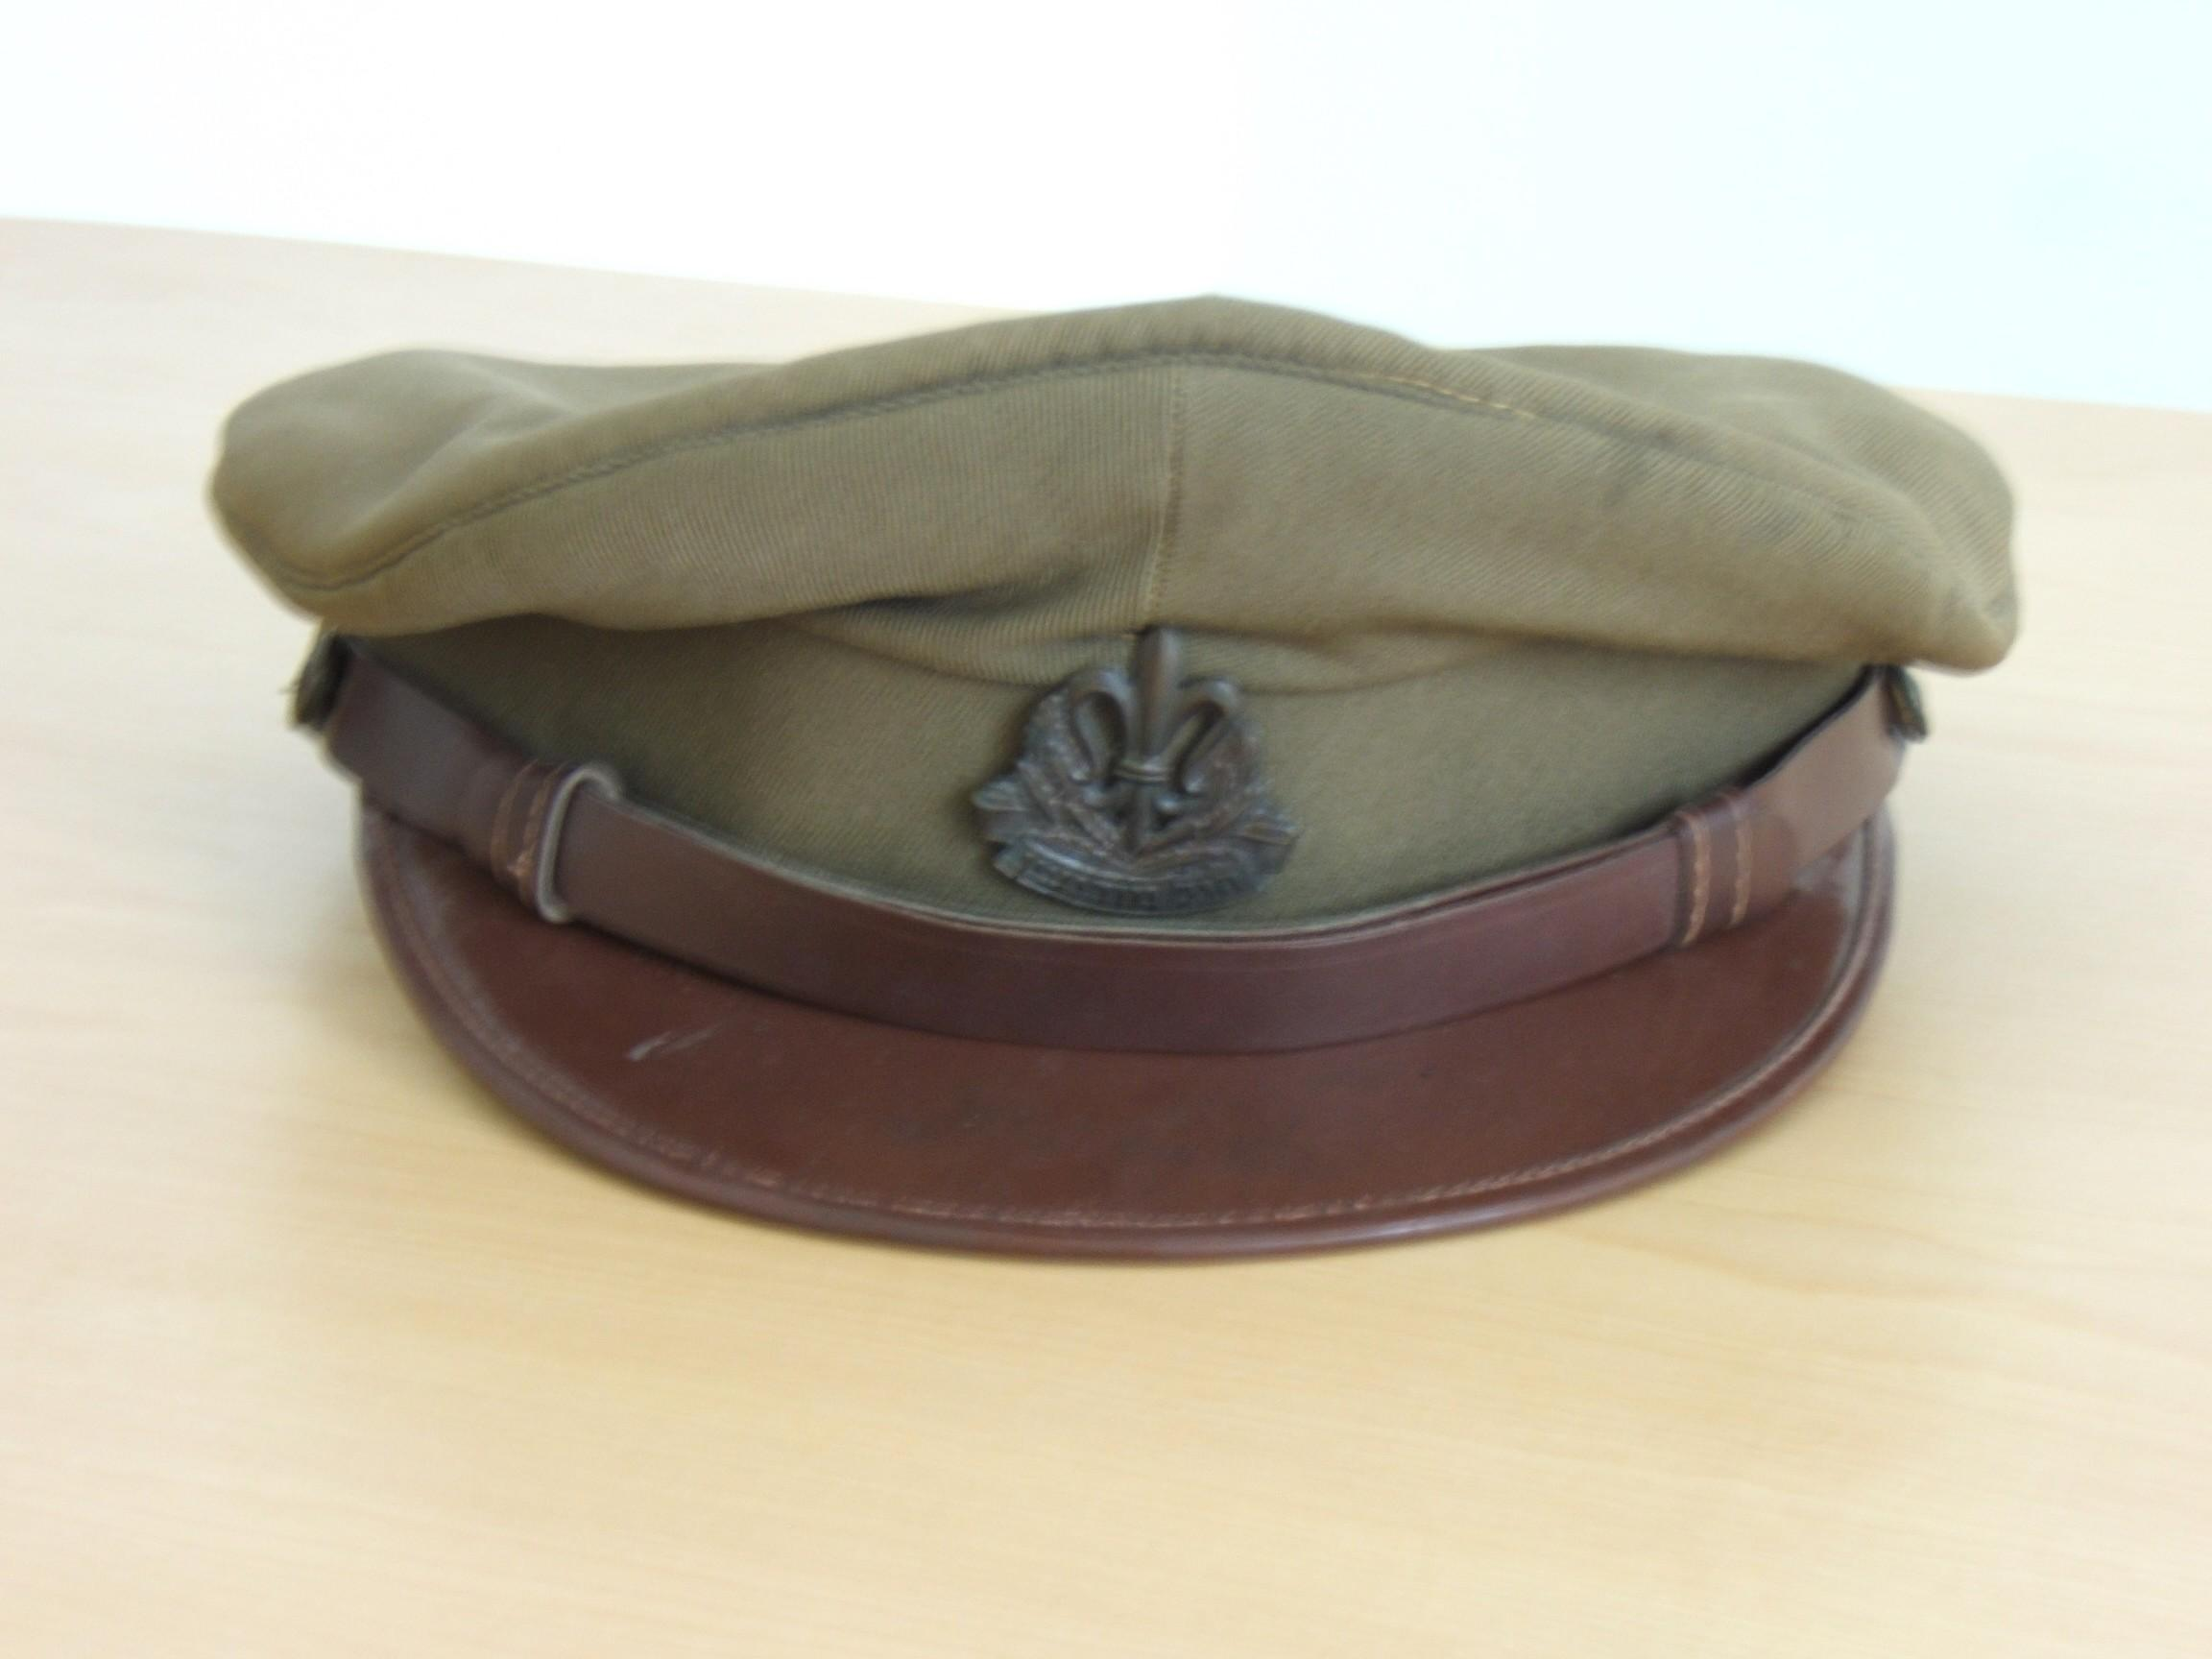 IDF intelligence corps khaki-brown cloth visored hat, 1950s